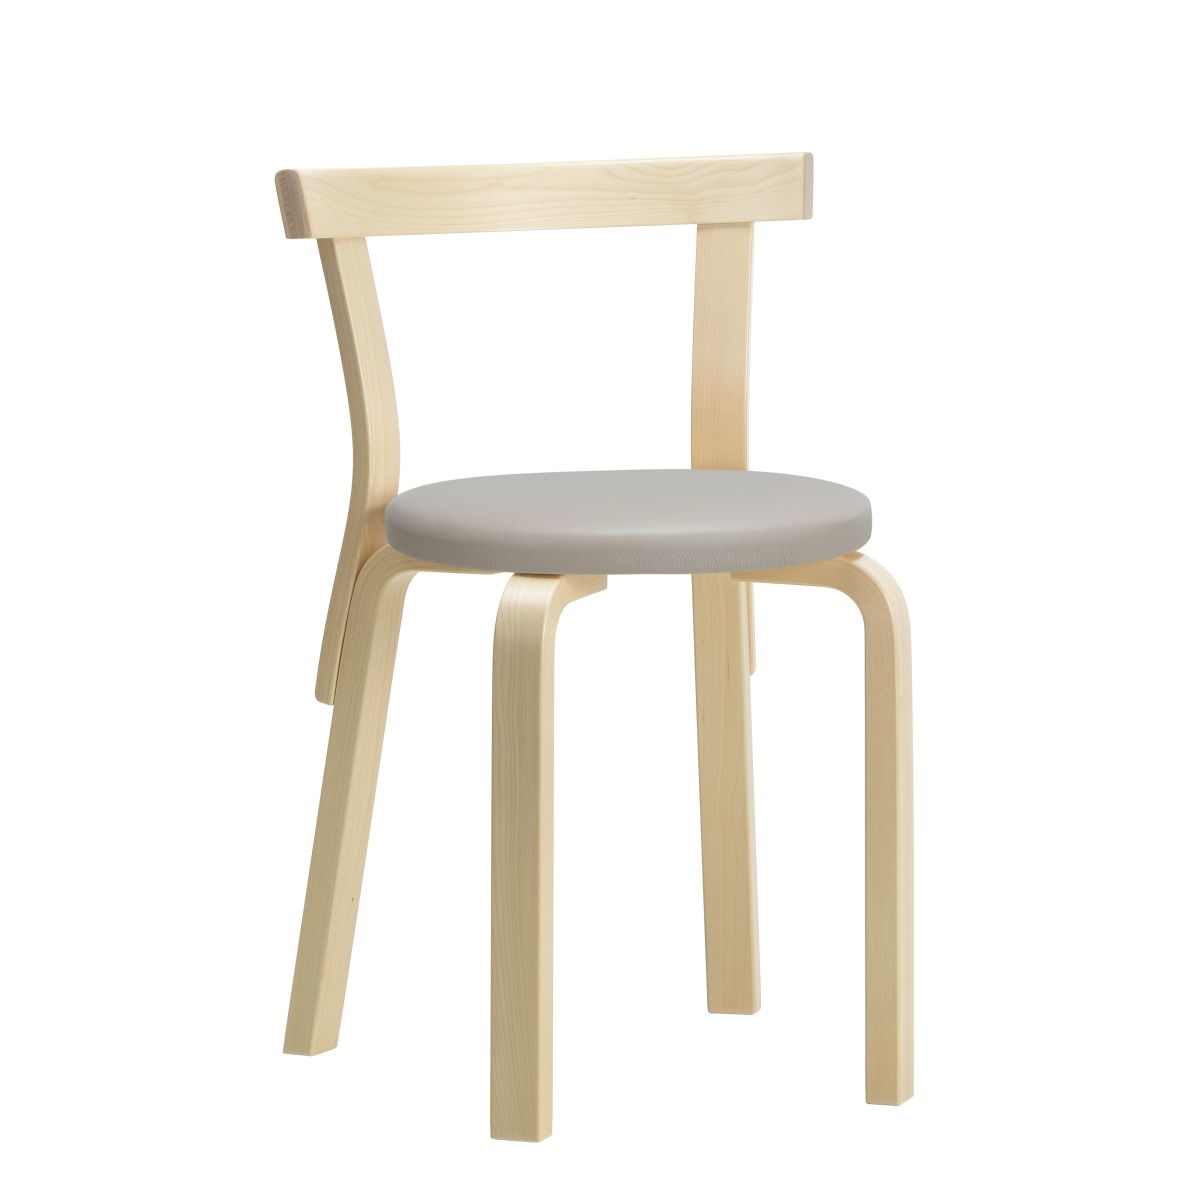 Chair-68-birch-natural-lacquered-seat-leather-upholstery-padding_F-2912696